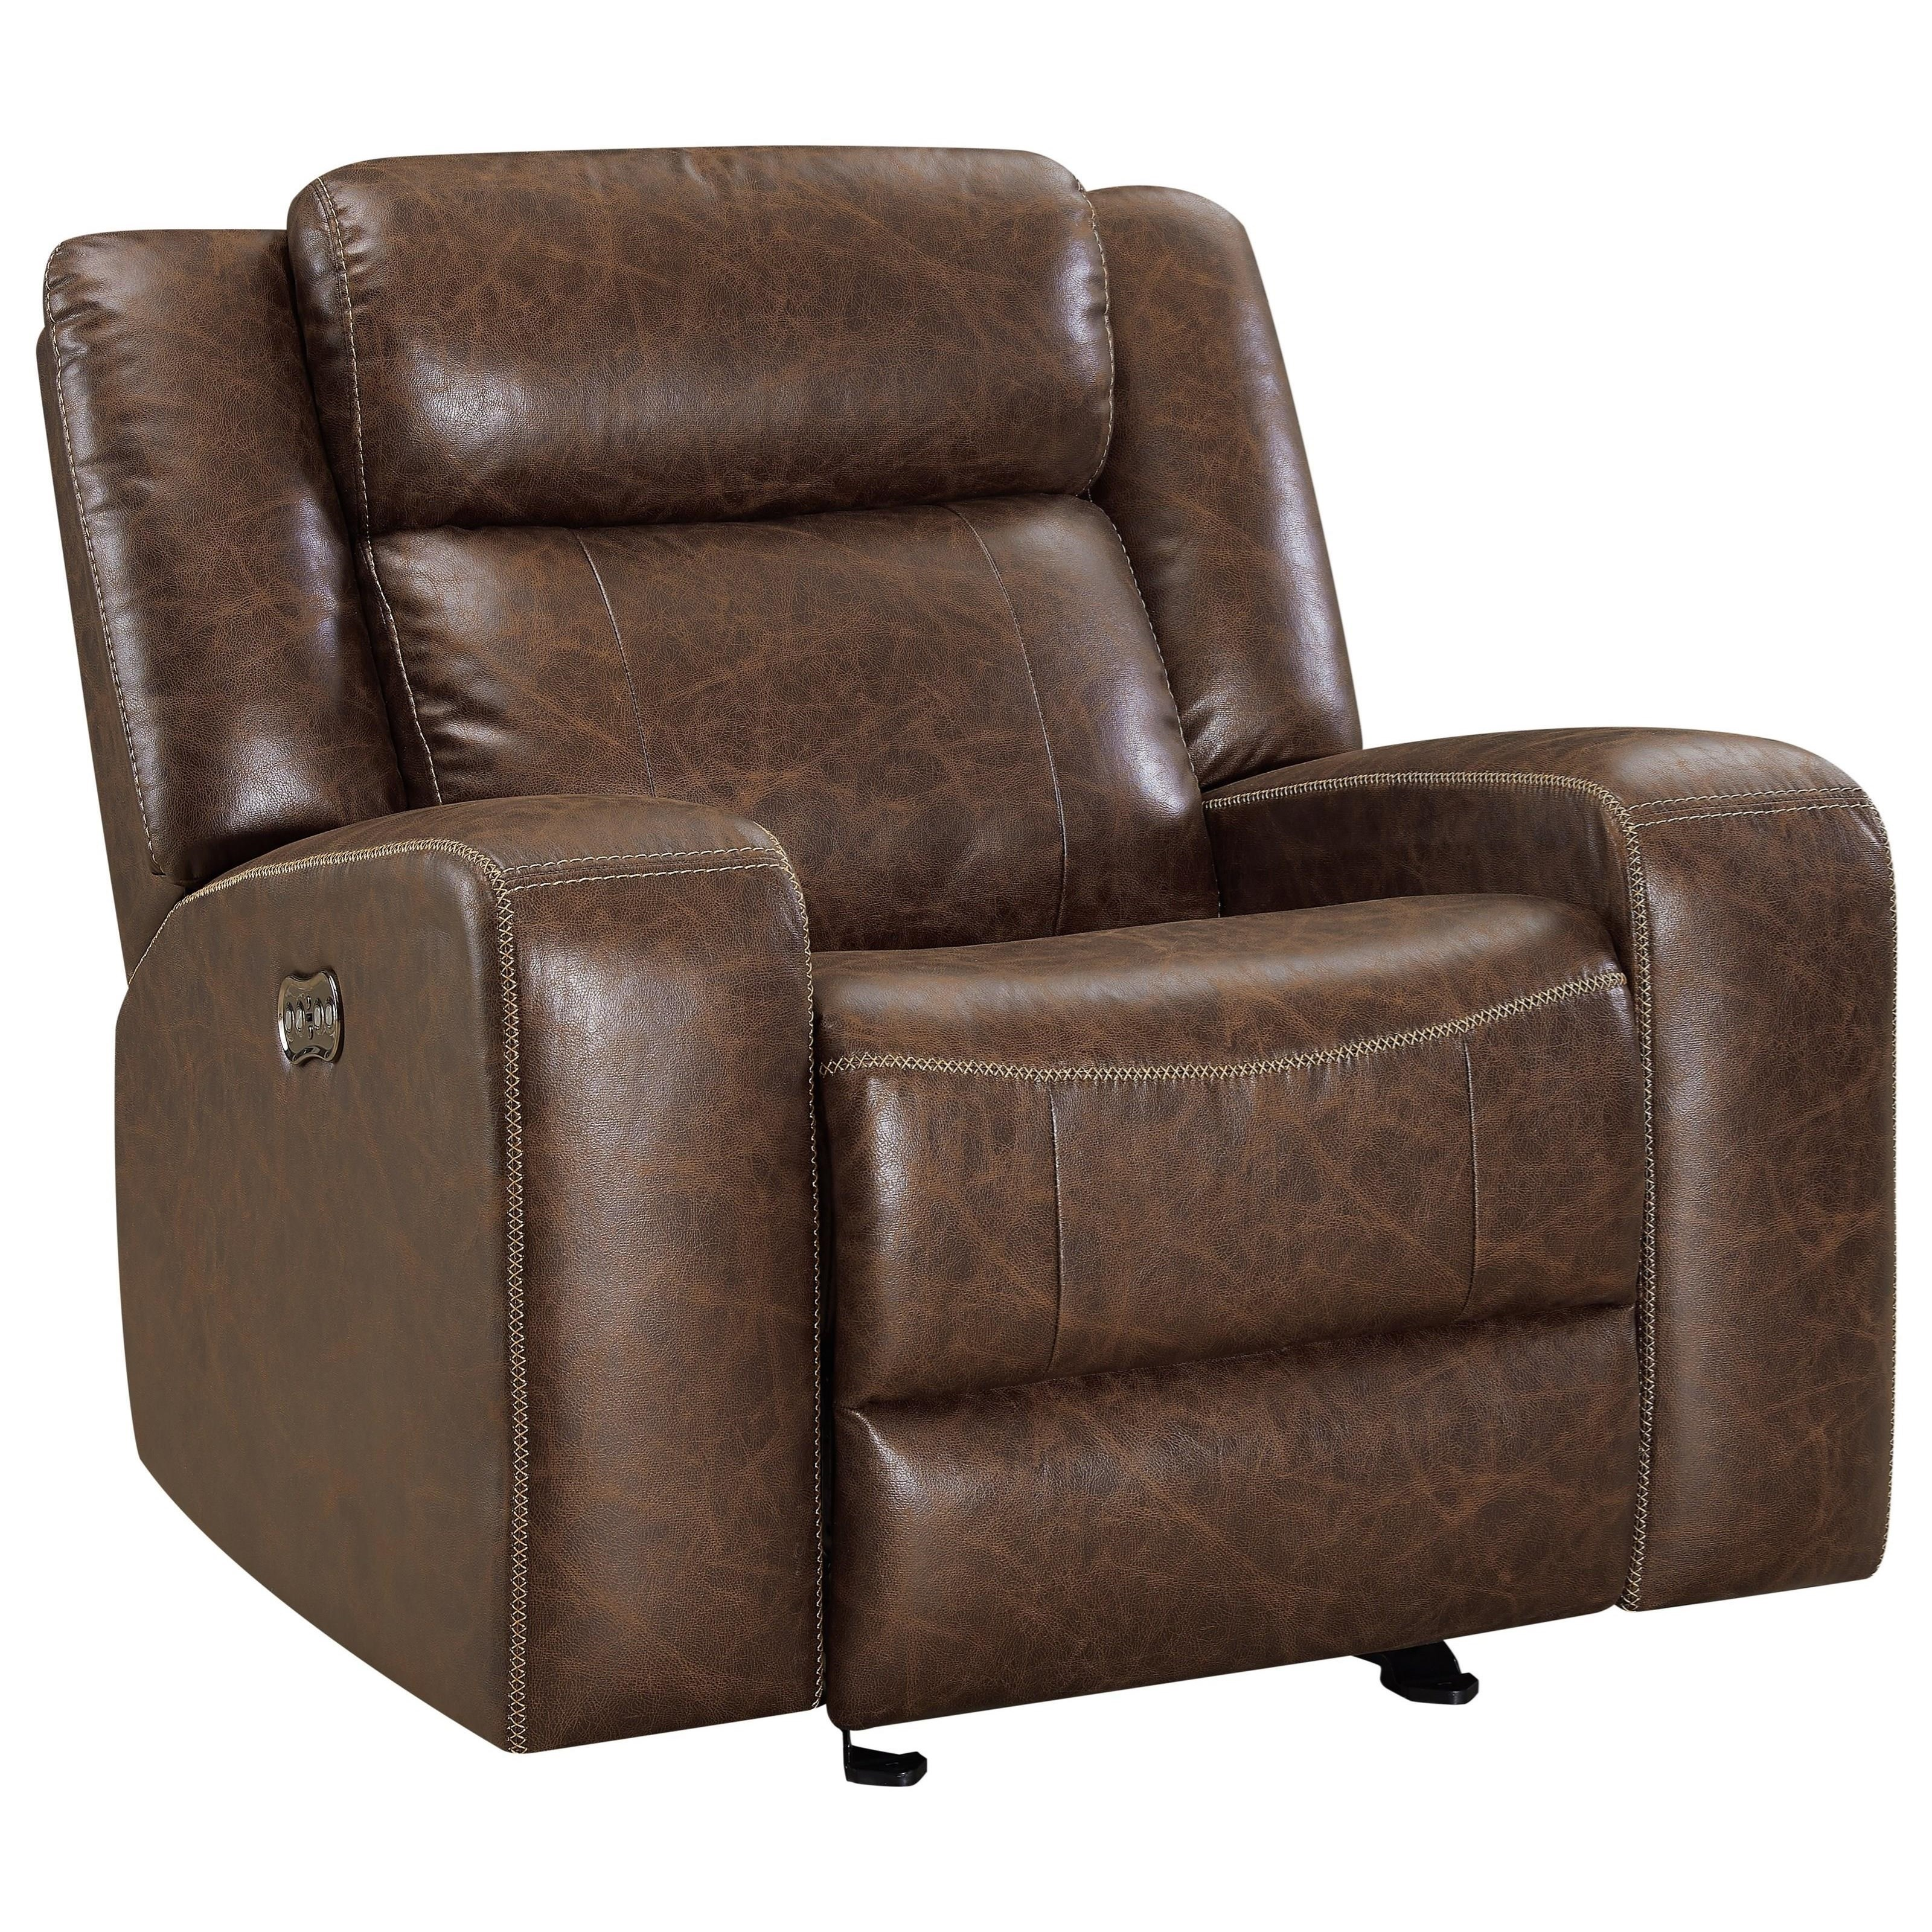 Atticus Power Glider Recliner by New Classic at Carolina Direct